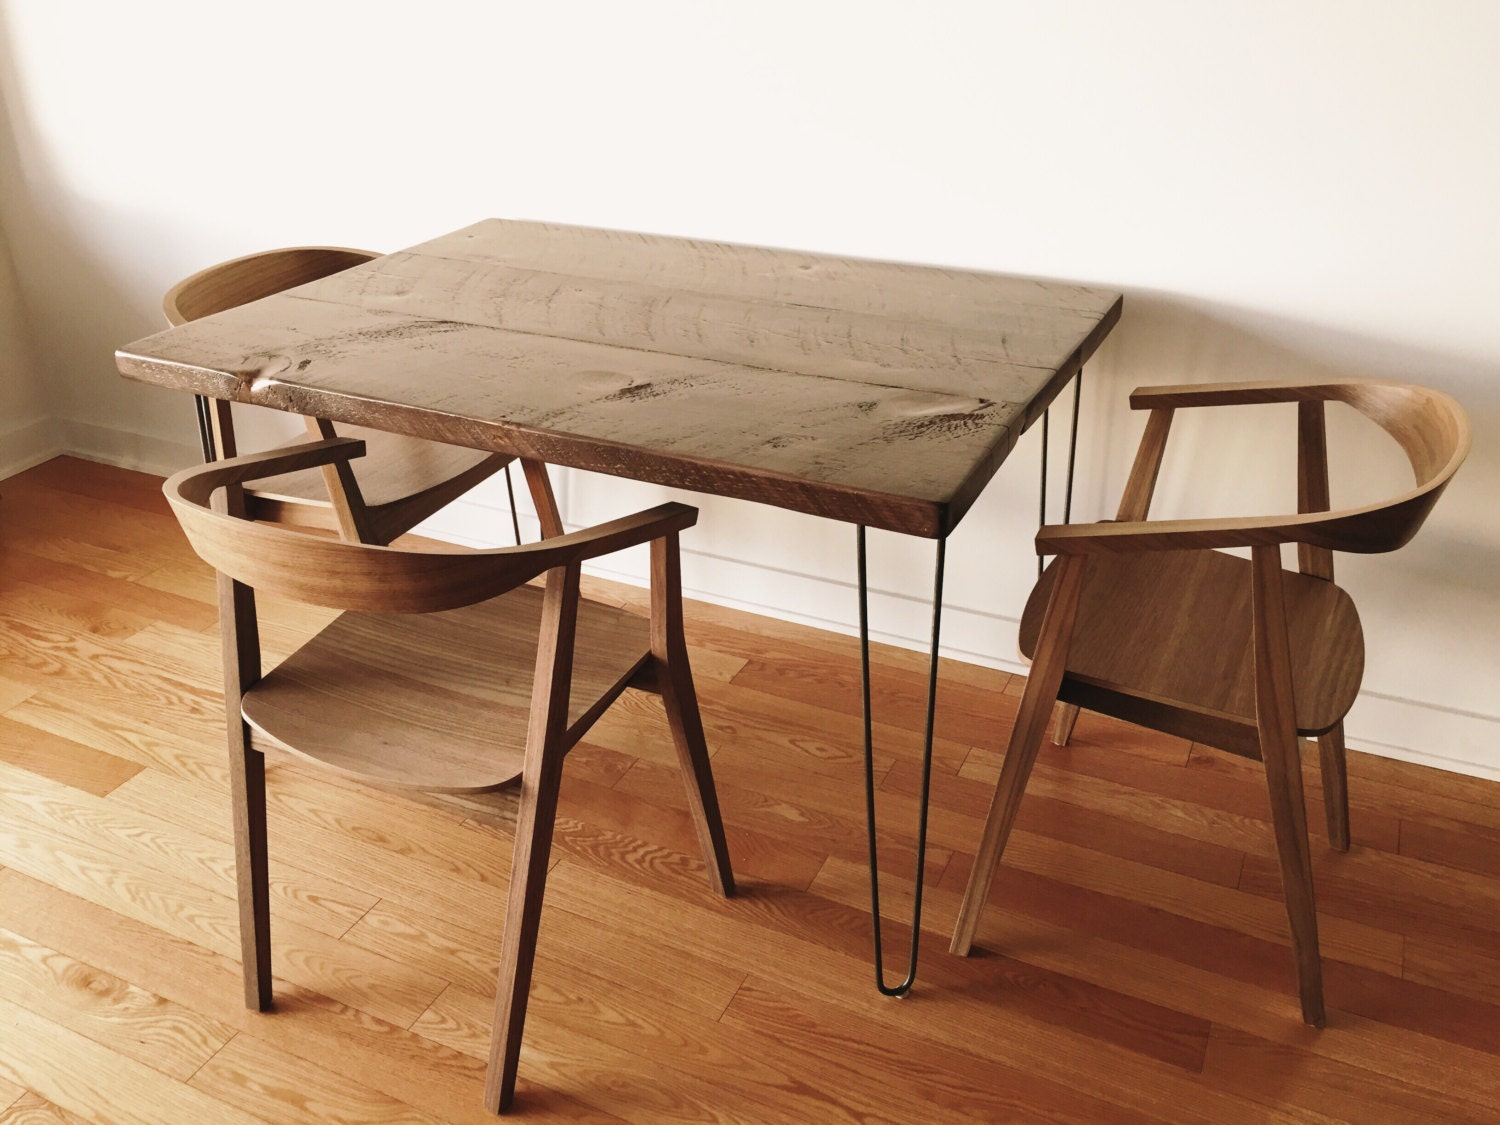 Reclaimed Wood Dining Table With Hairpin Legs By Ateliereben